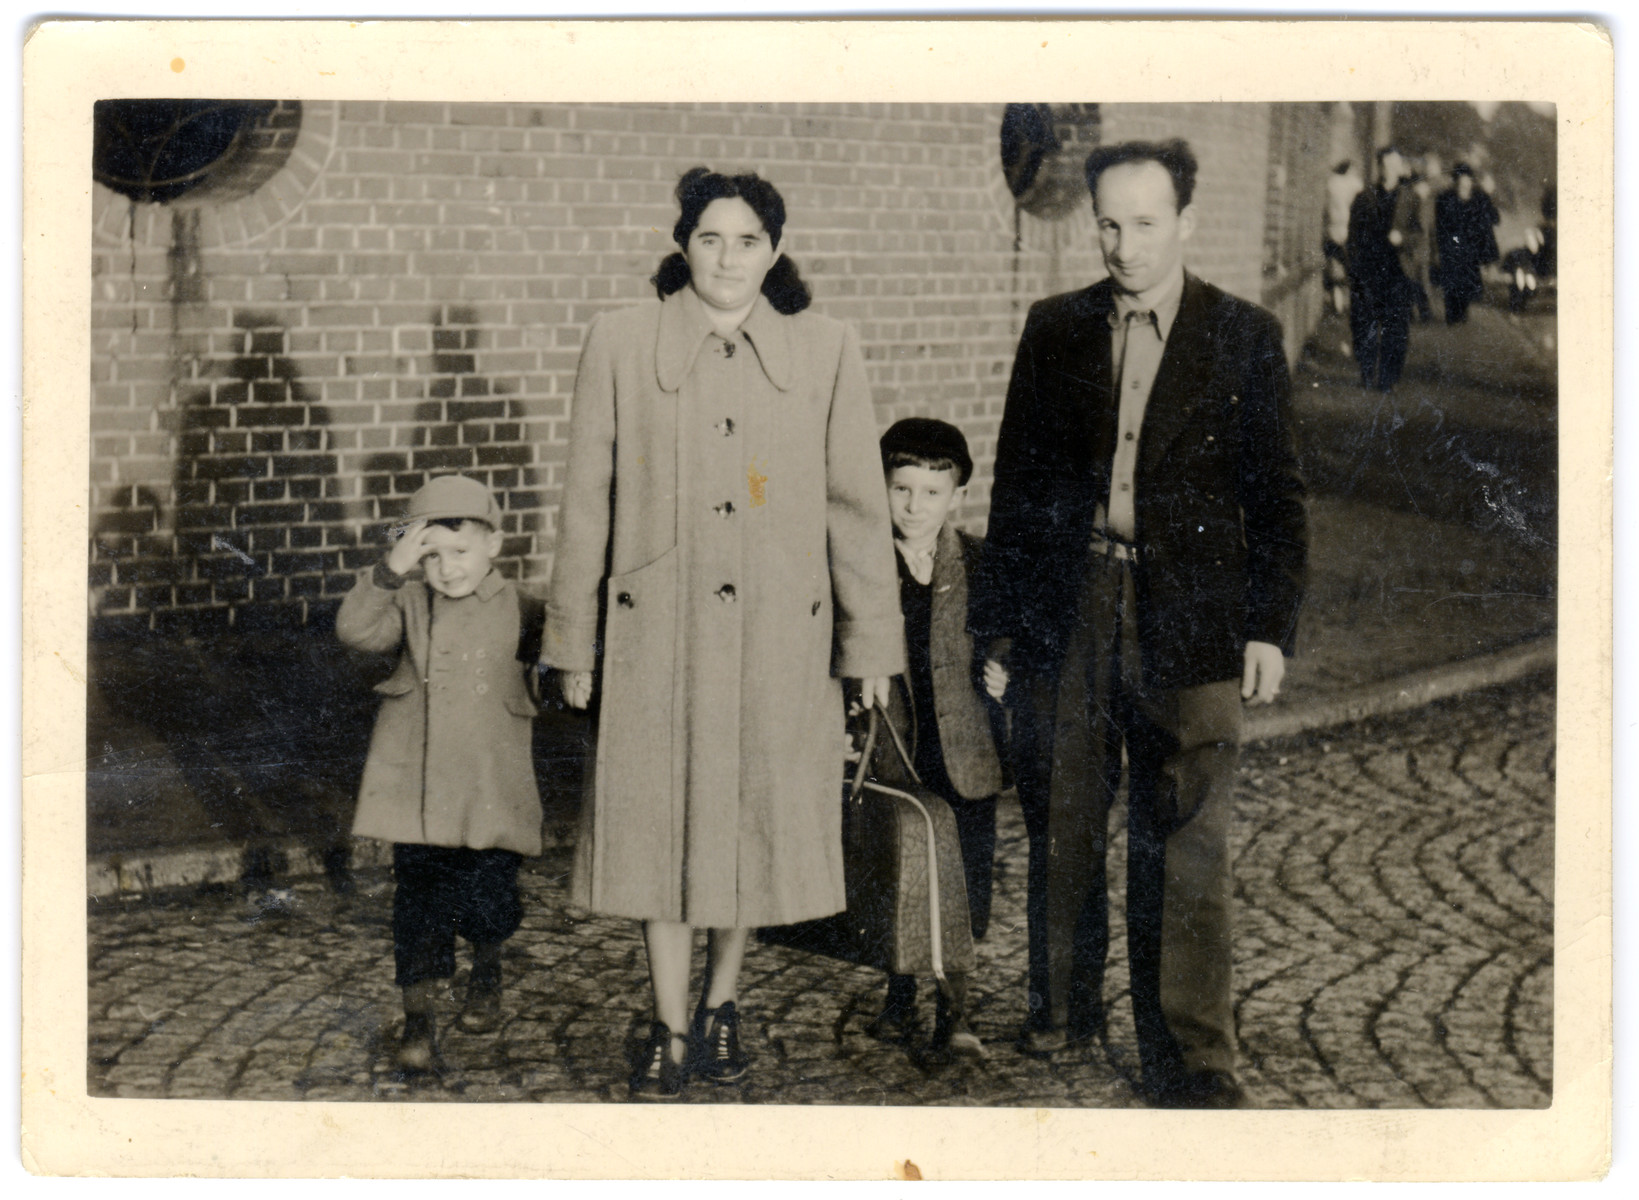 Mendel and Frieda Feldman with their children Fred and Irving, board the steamship SS General Sturgis in Bremerhaven, Germany, on their way to the United States.